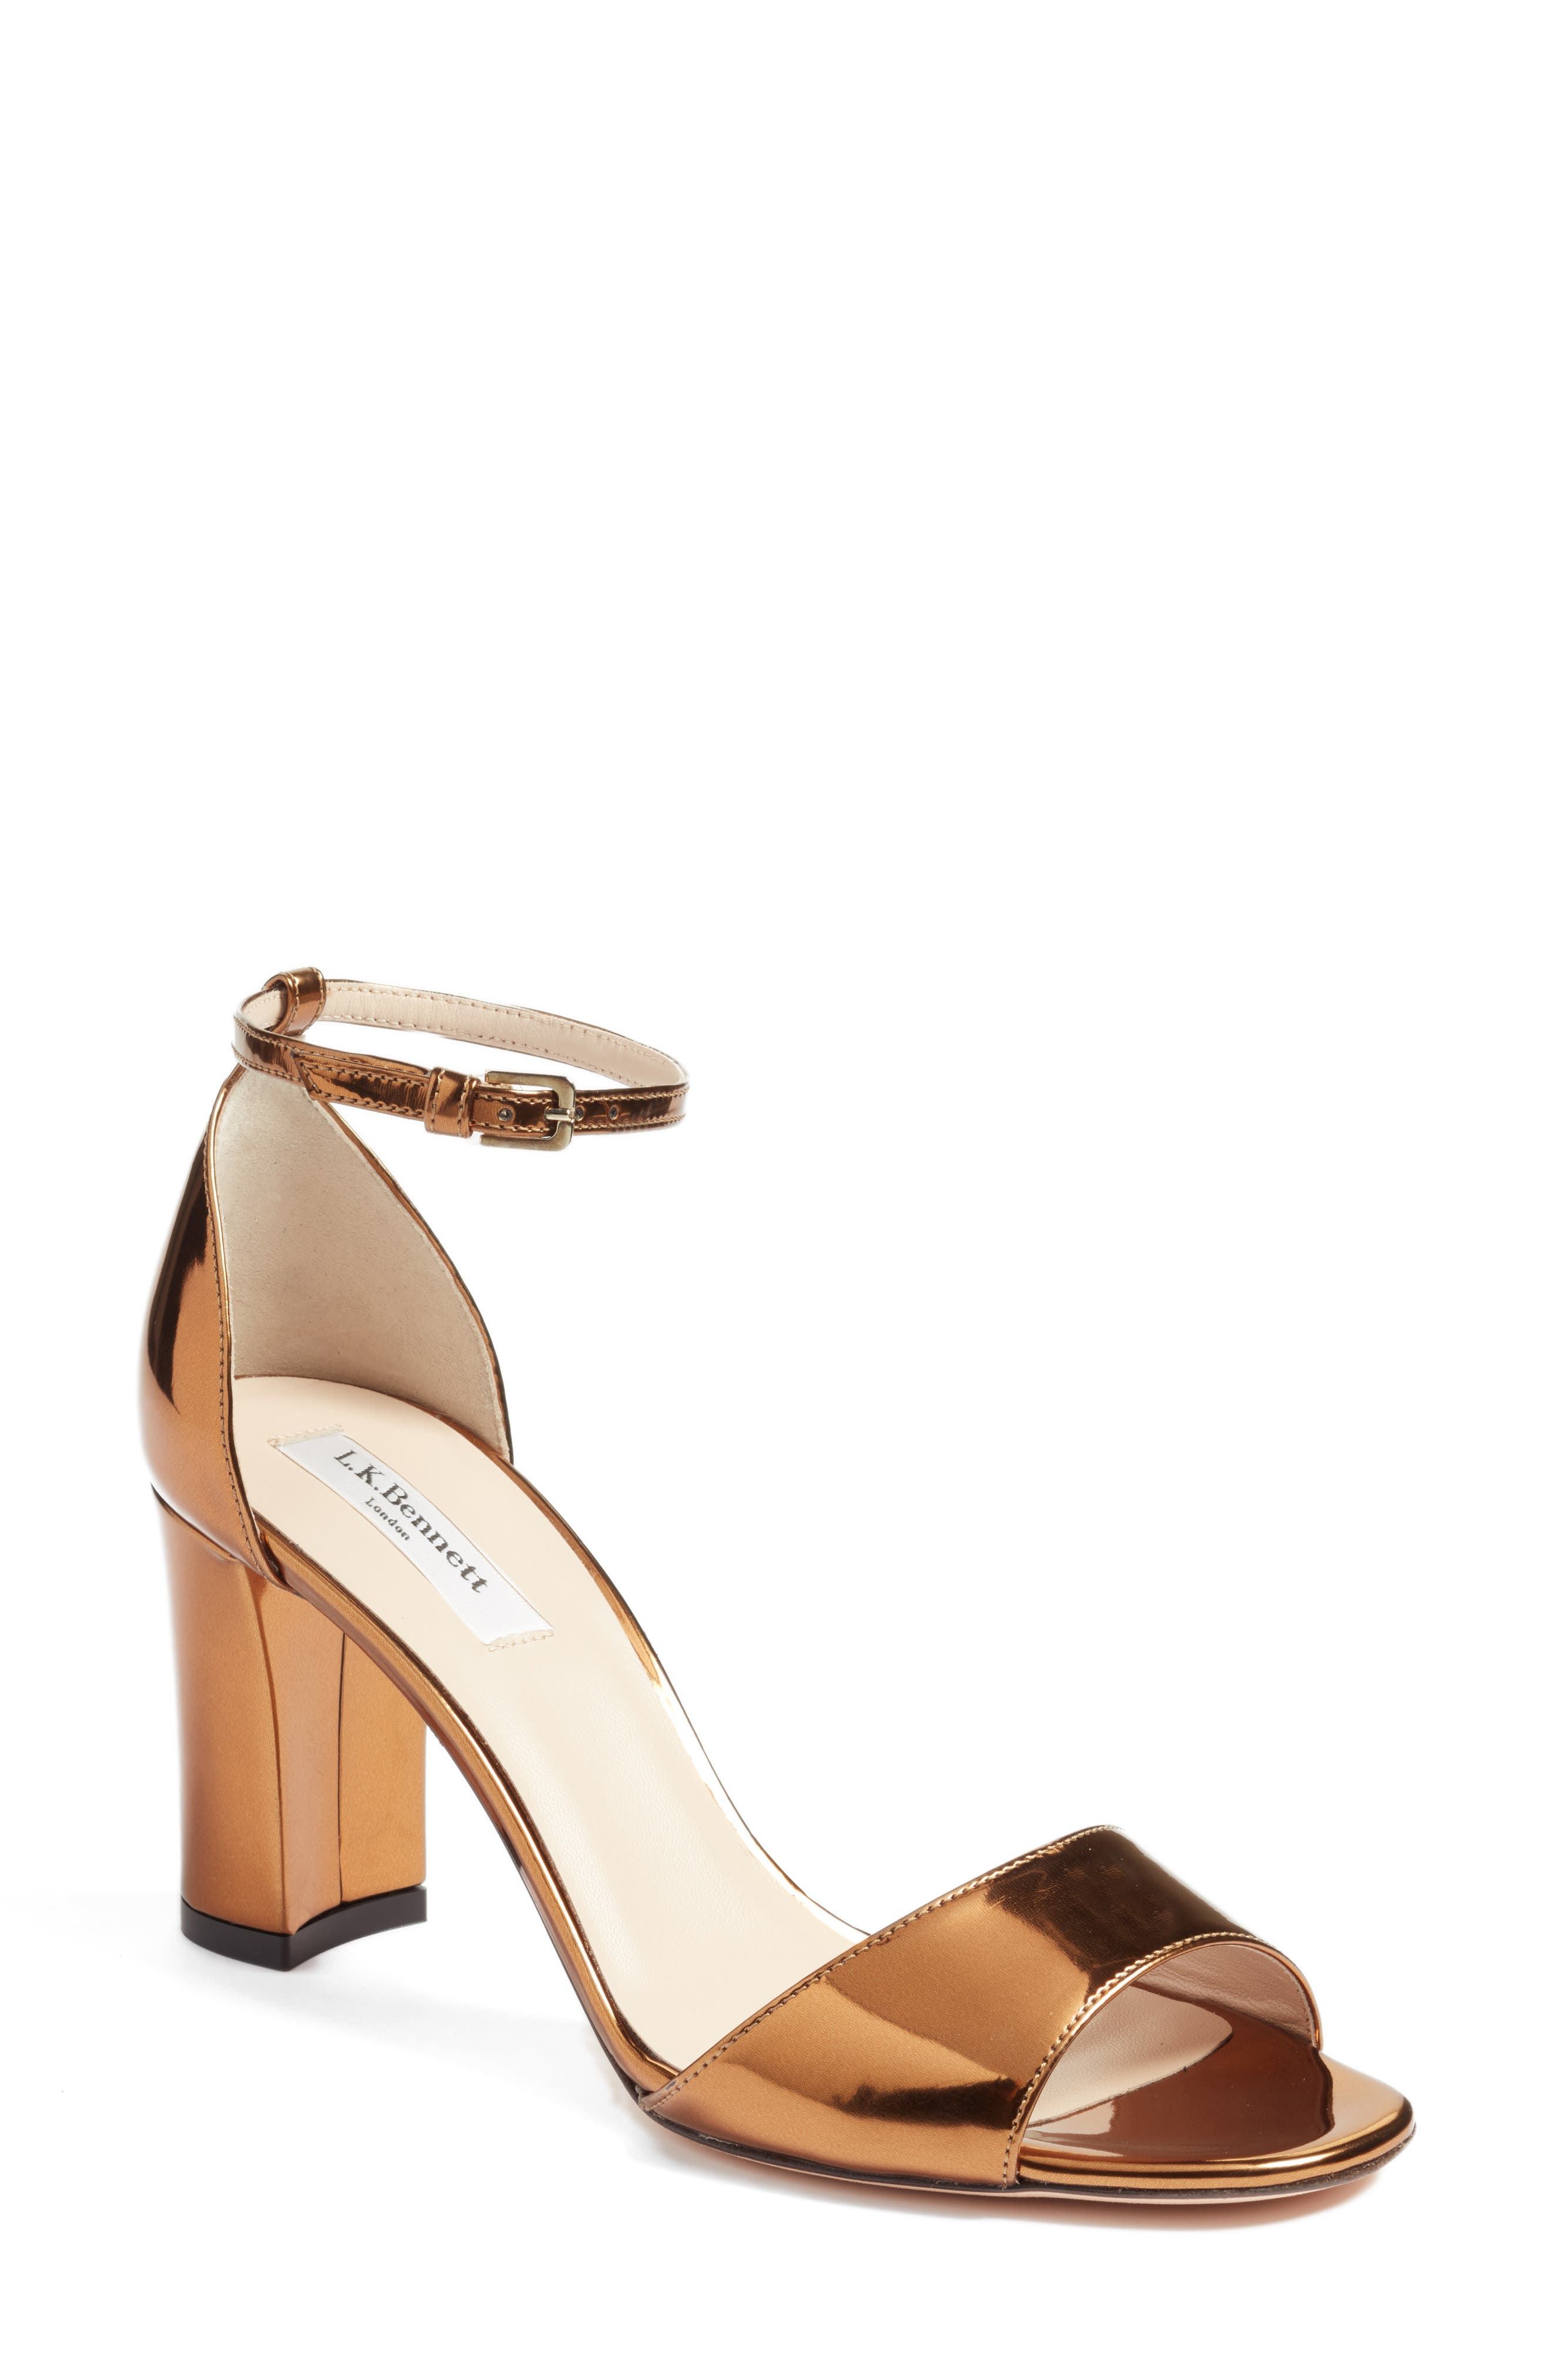 Alternate Image 1 Selected - L.K. Bennett 'Helena' Ankle Strap Block Heel Sandal (Women)